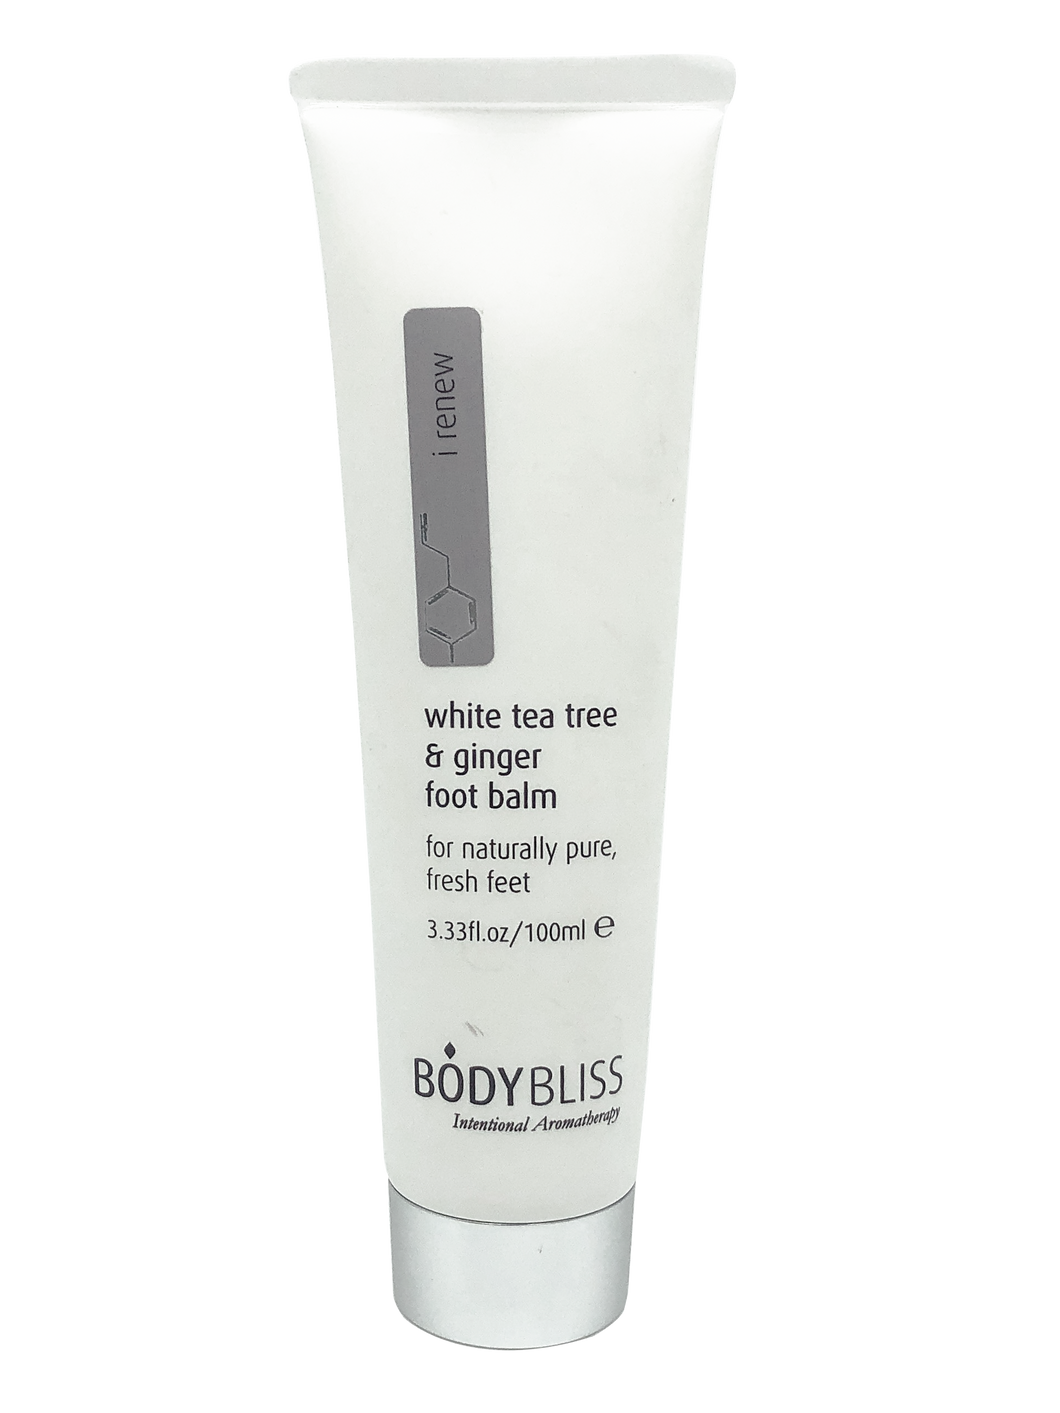 Body Bliss White Tea Tree & Ginger Foot Balm